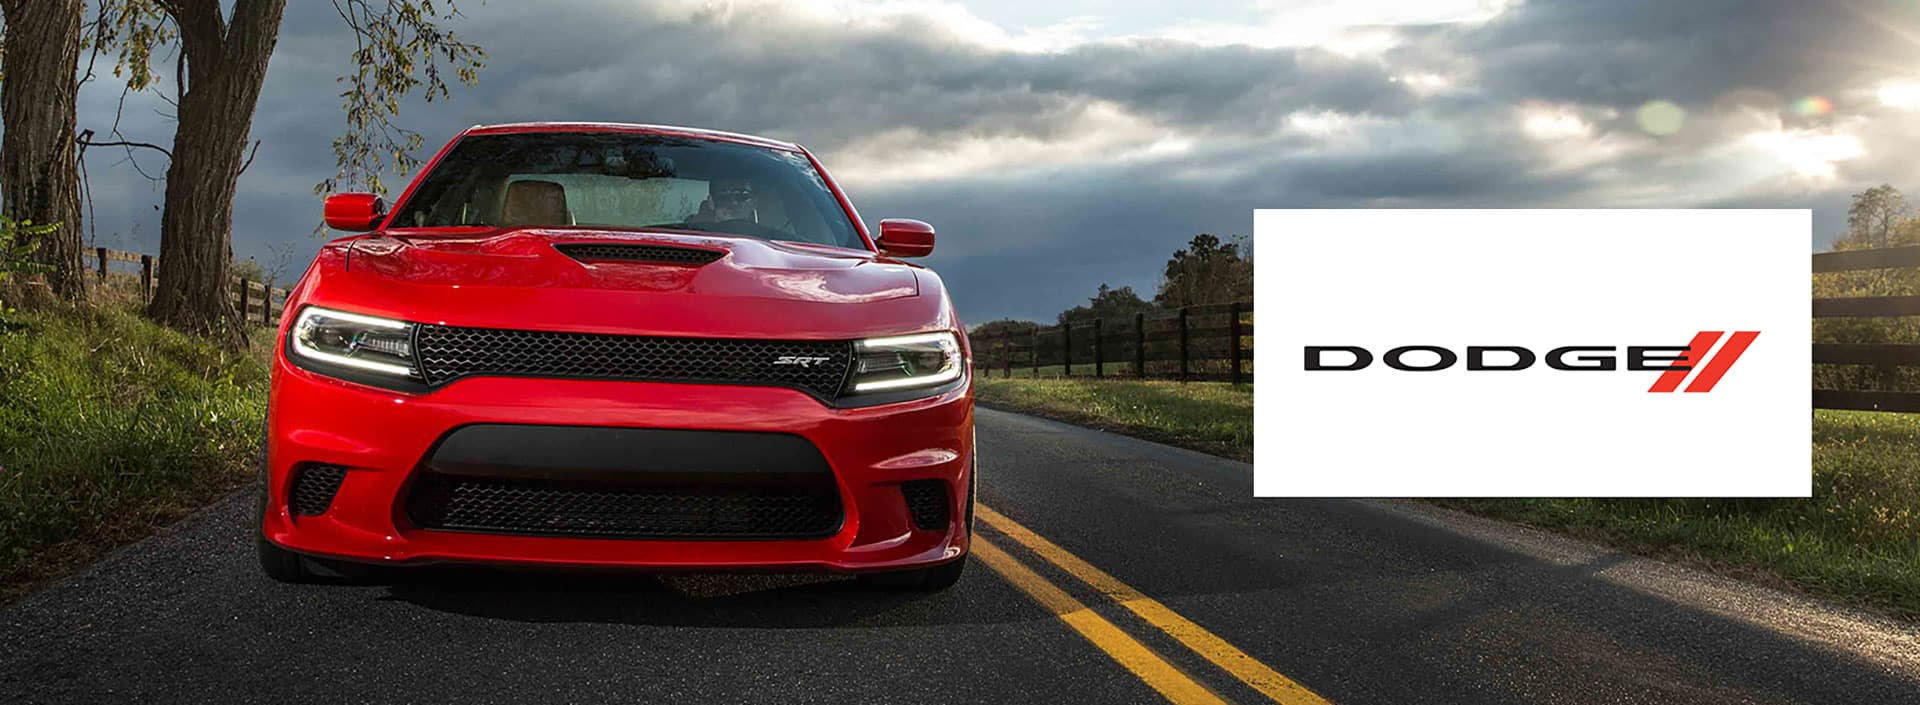 Dodge Charger Banner